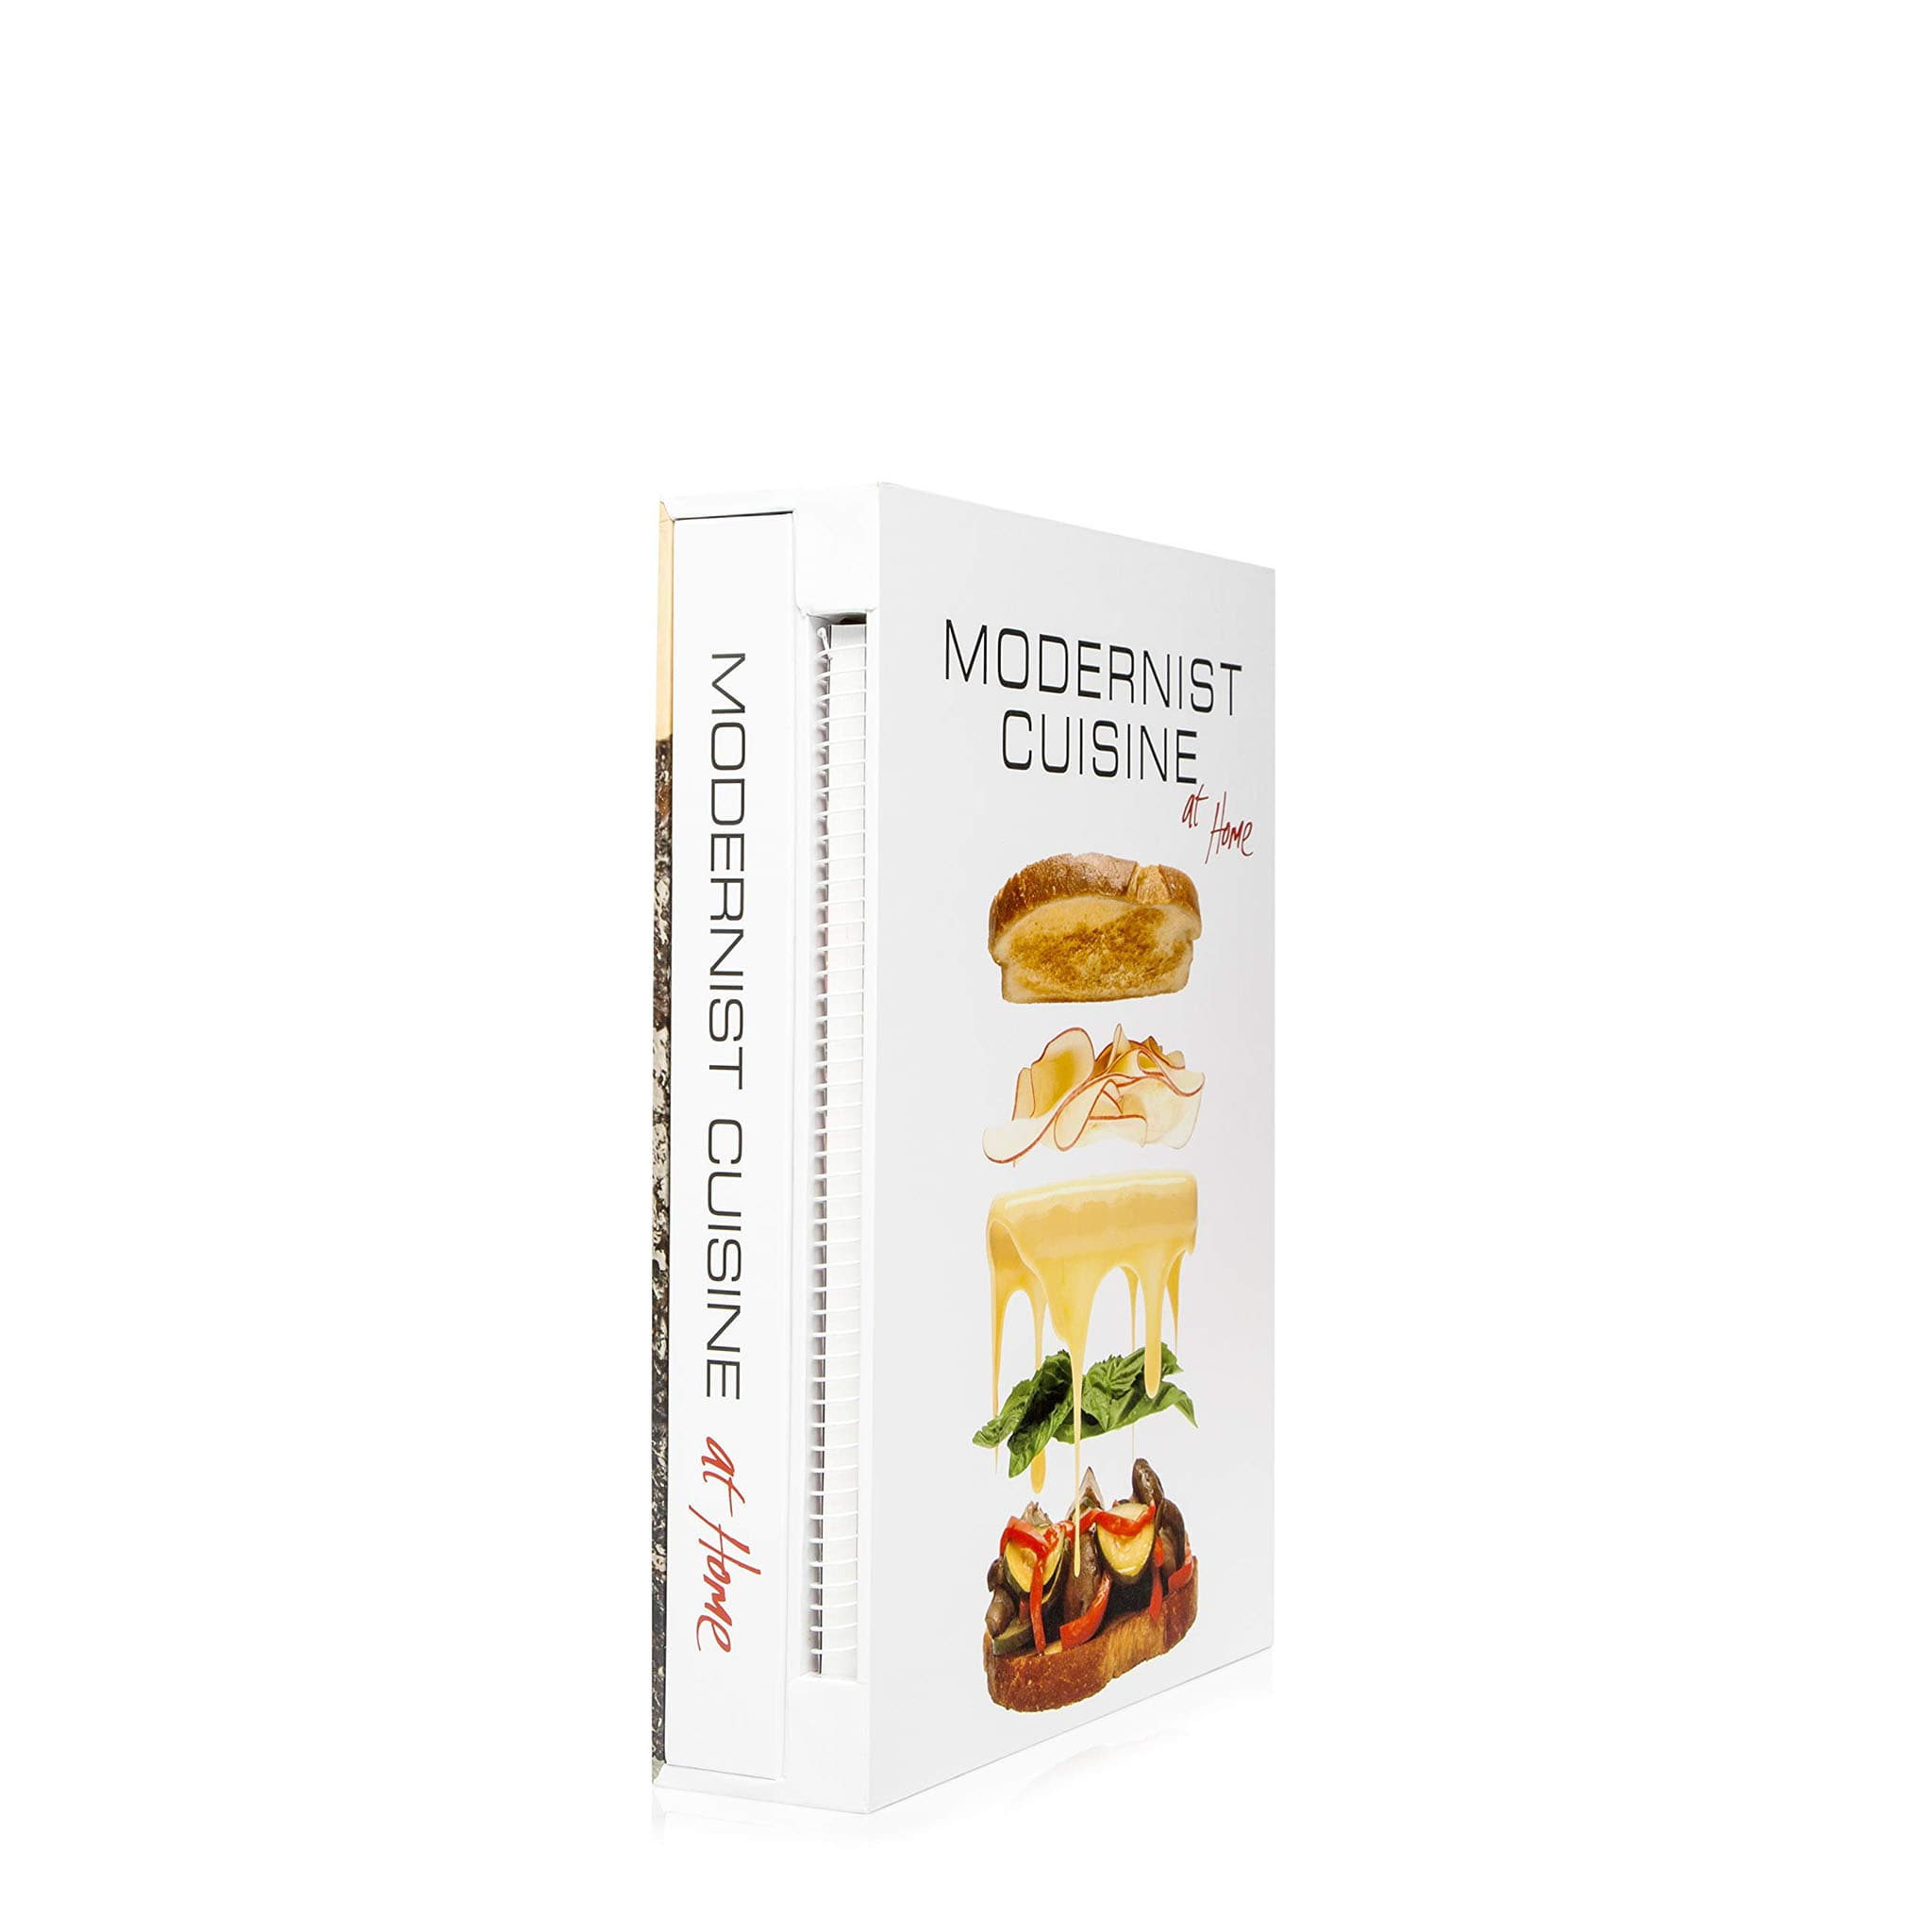 Modernist Cuisine At Home by Nathan Myhrvold & Maxime Bilet